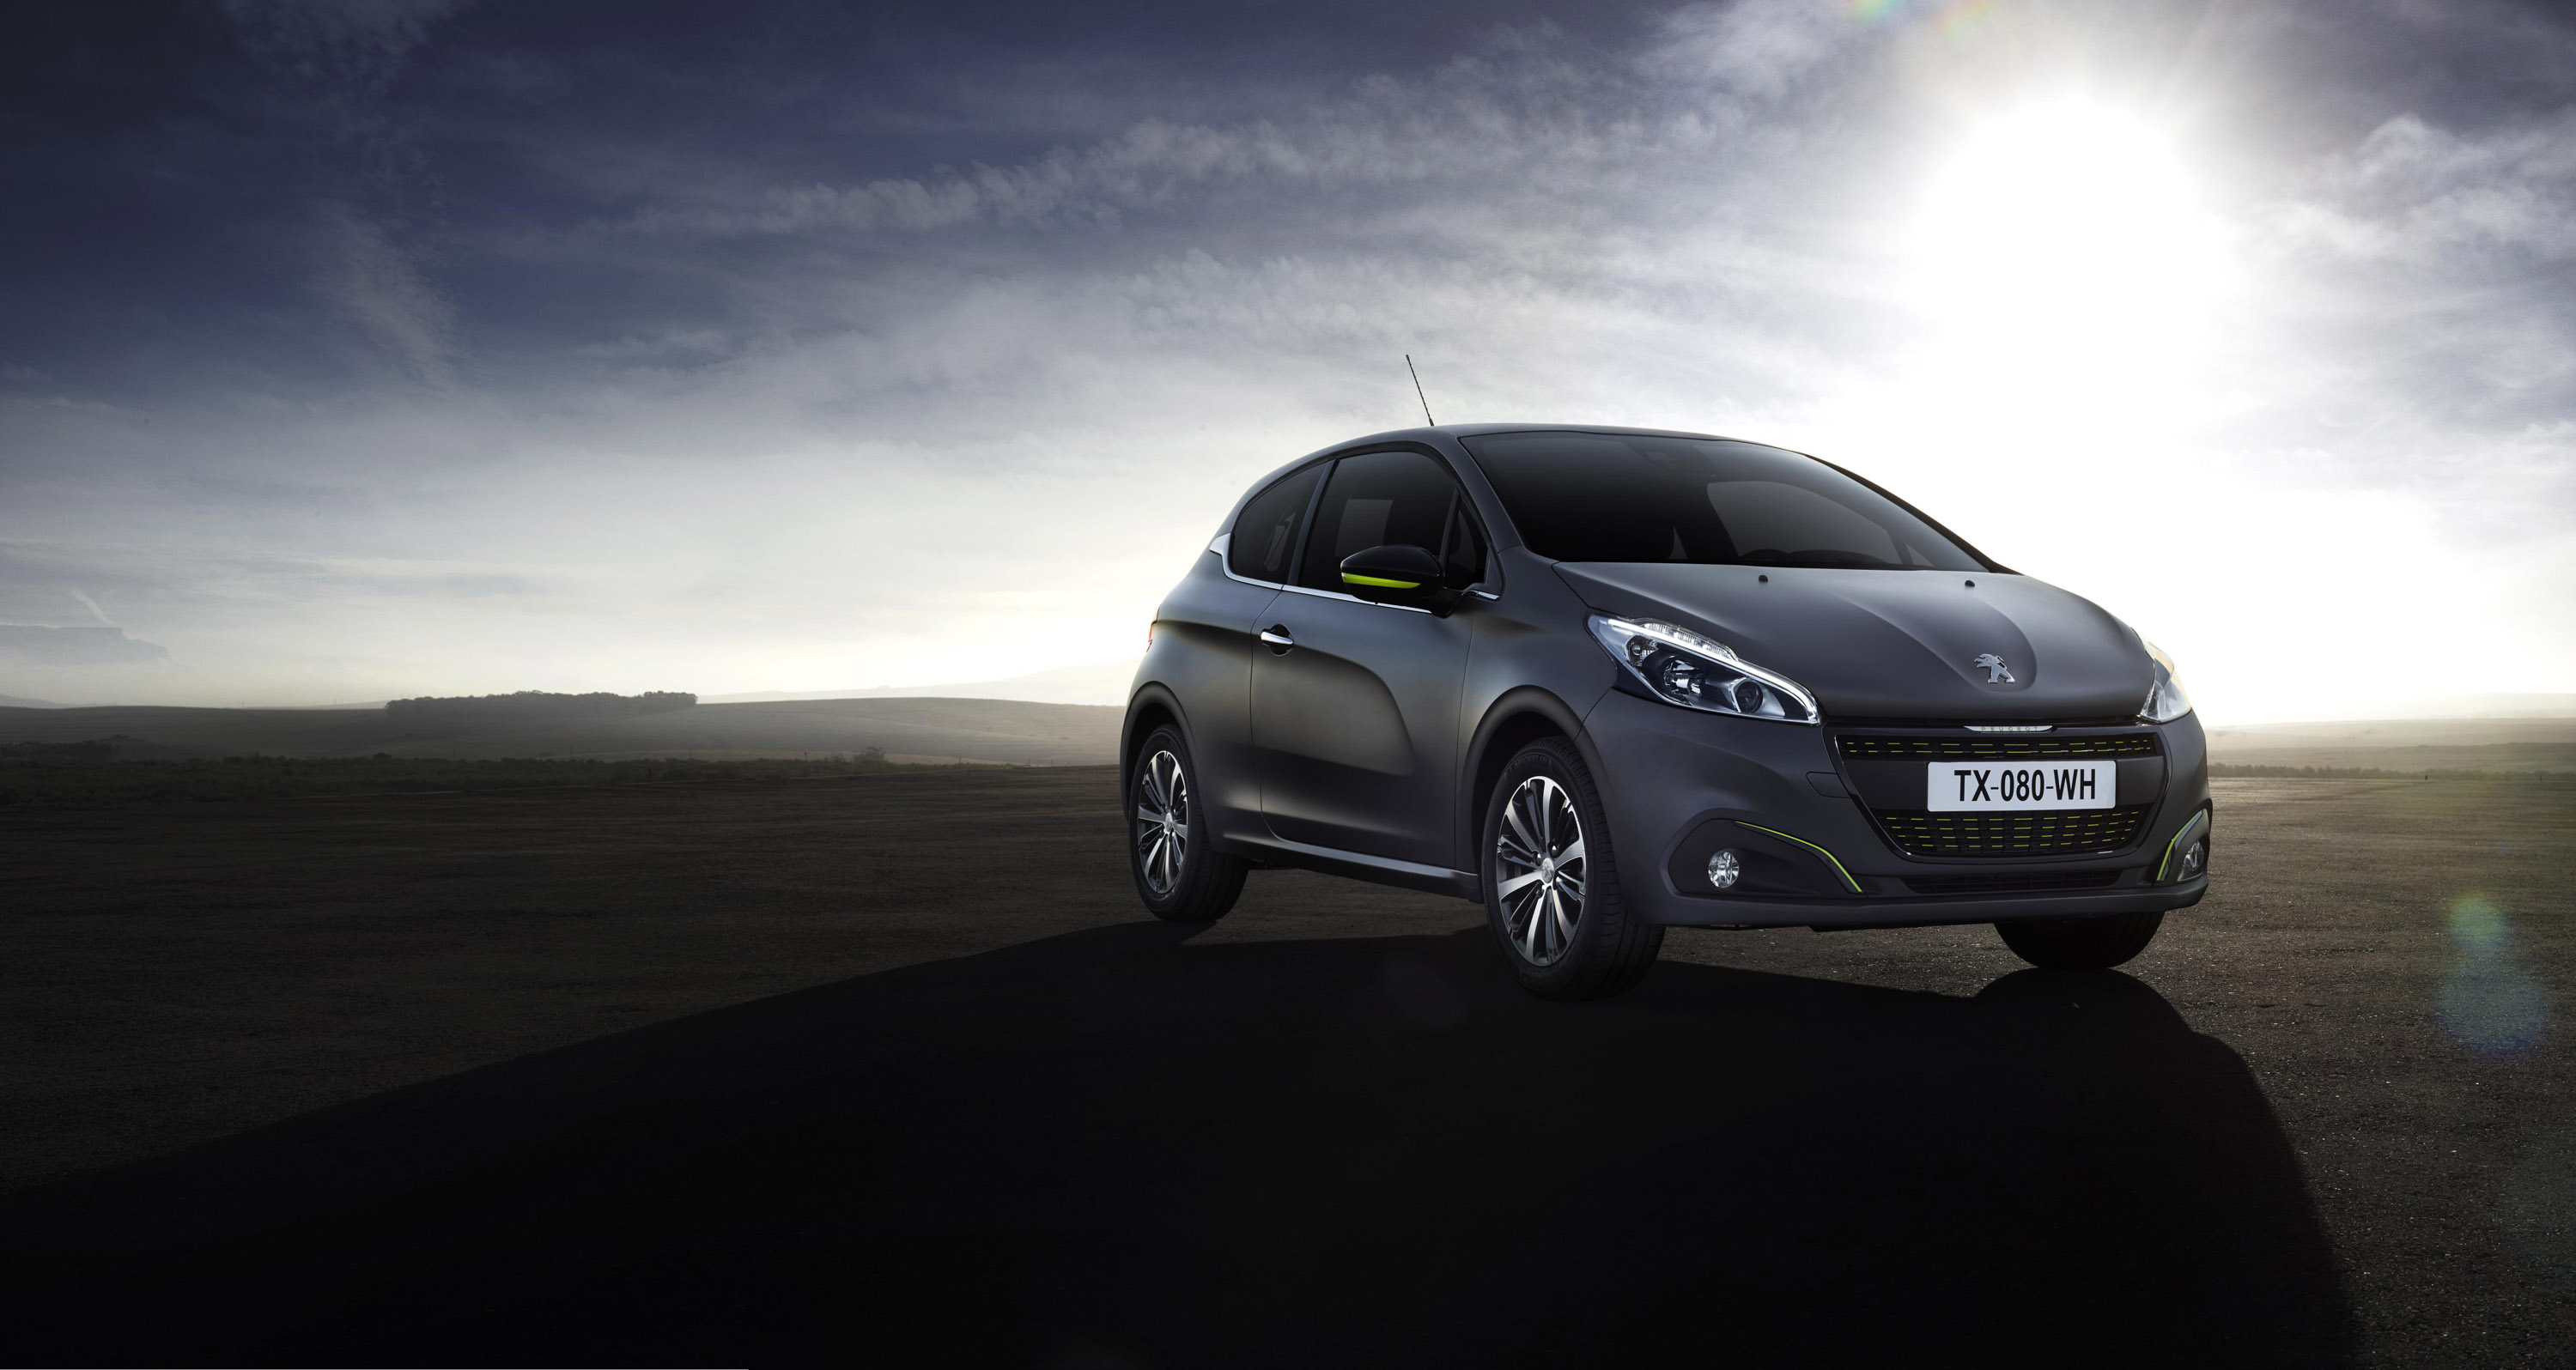 Car Wallpaper Hd Download For Mobile 2015 Peugeot 208 Ice Silver And Ice Grey